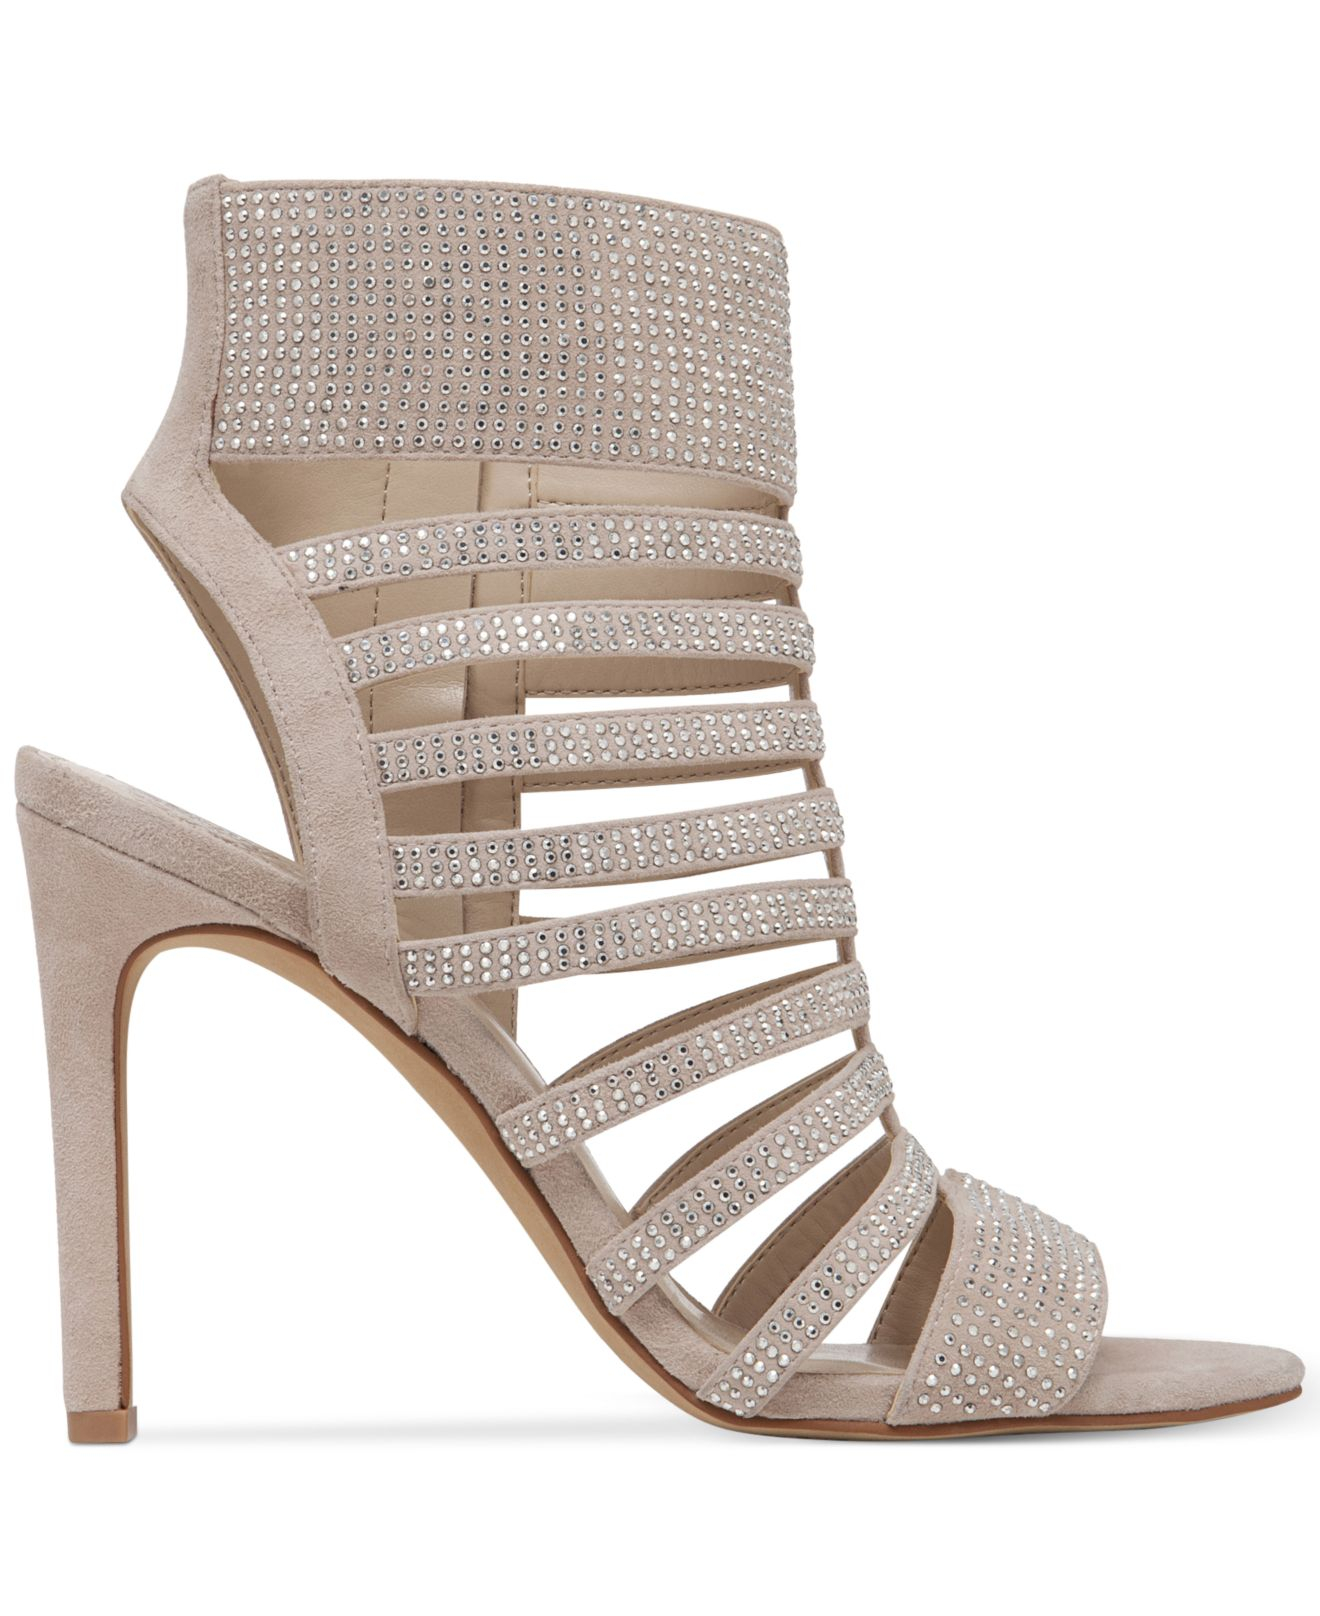 Lyst Vince Camuto Katal Gladiator Evening Sandals In Natural